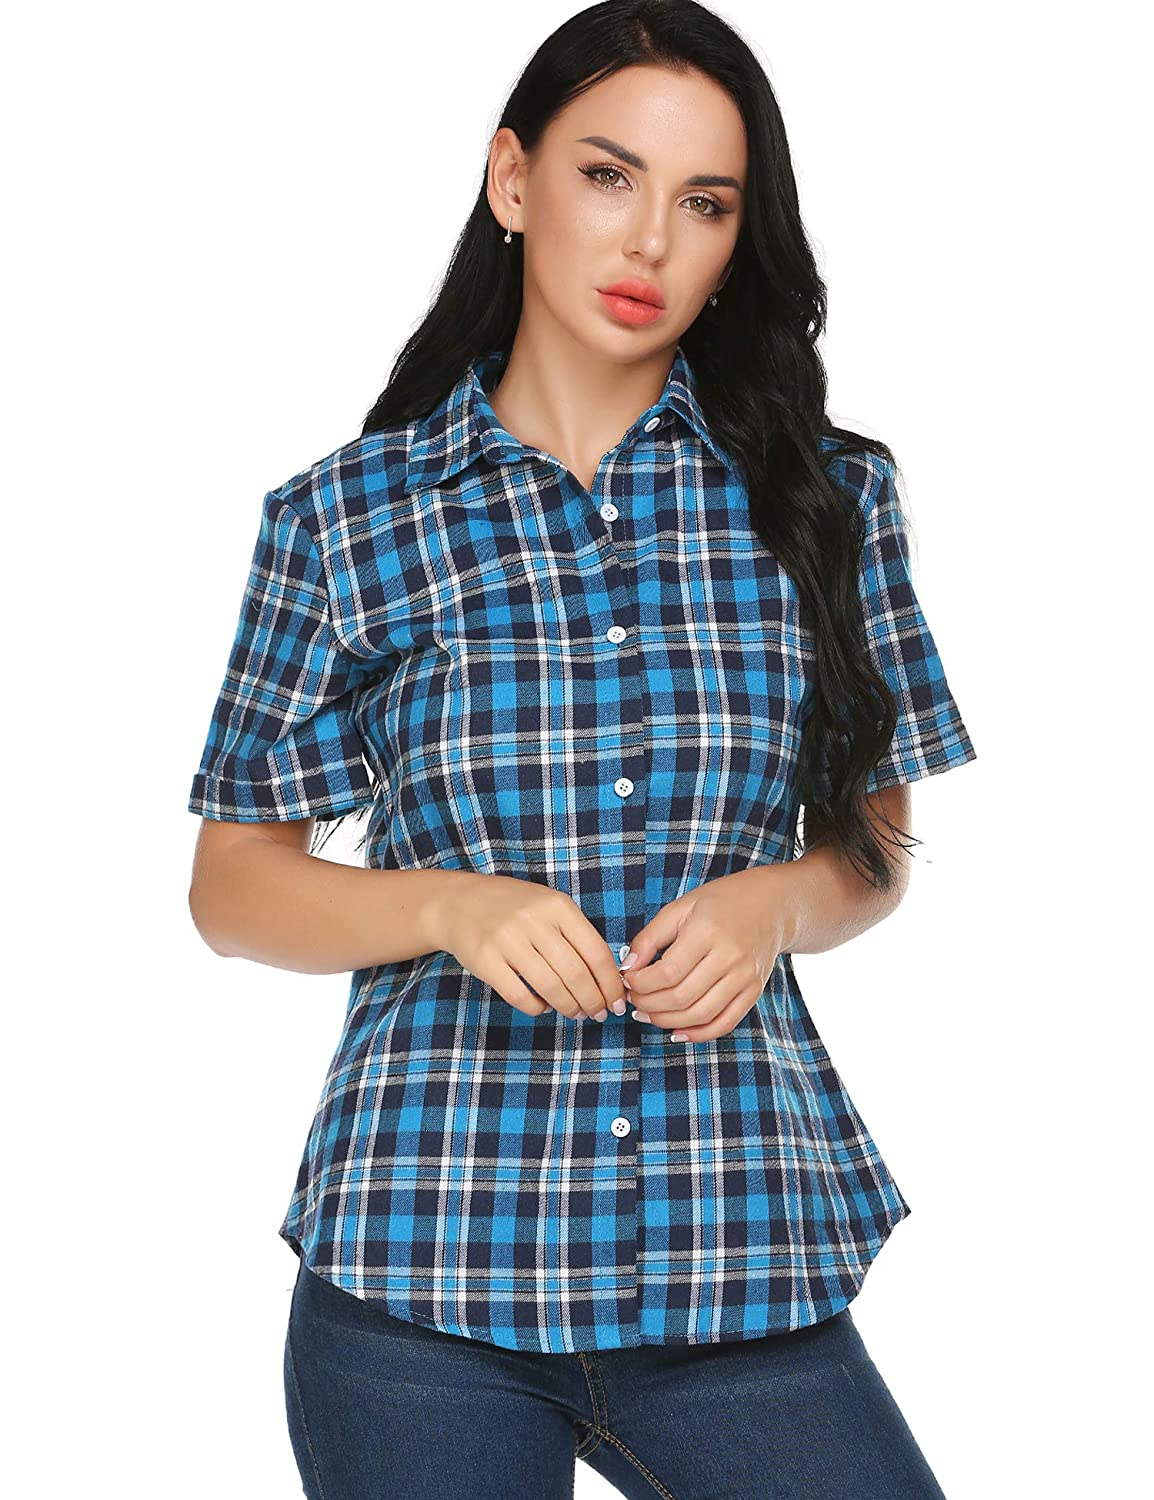 Rosie the Riveter Costume & Outfit Ideas SUNAELIA Womens Plaid Flannel Shirt Short Sleeve Boyfriend Button Down Cotton Casual Blouse Check Gingham Top S-XXL $21.99 AT vintagedancer.com